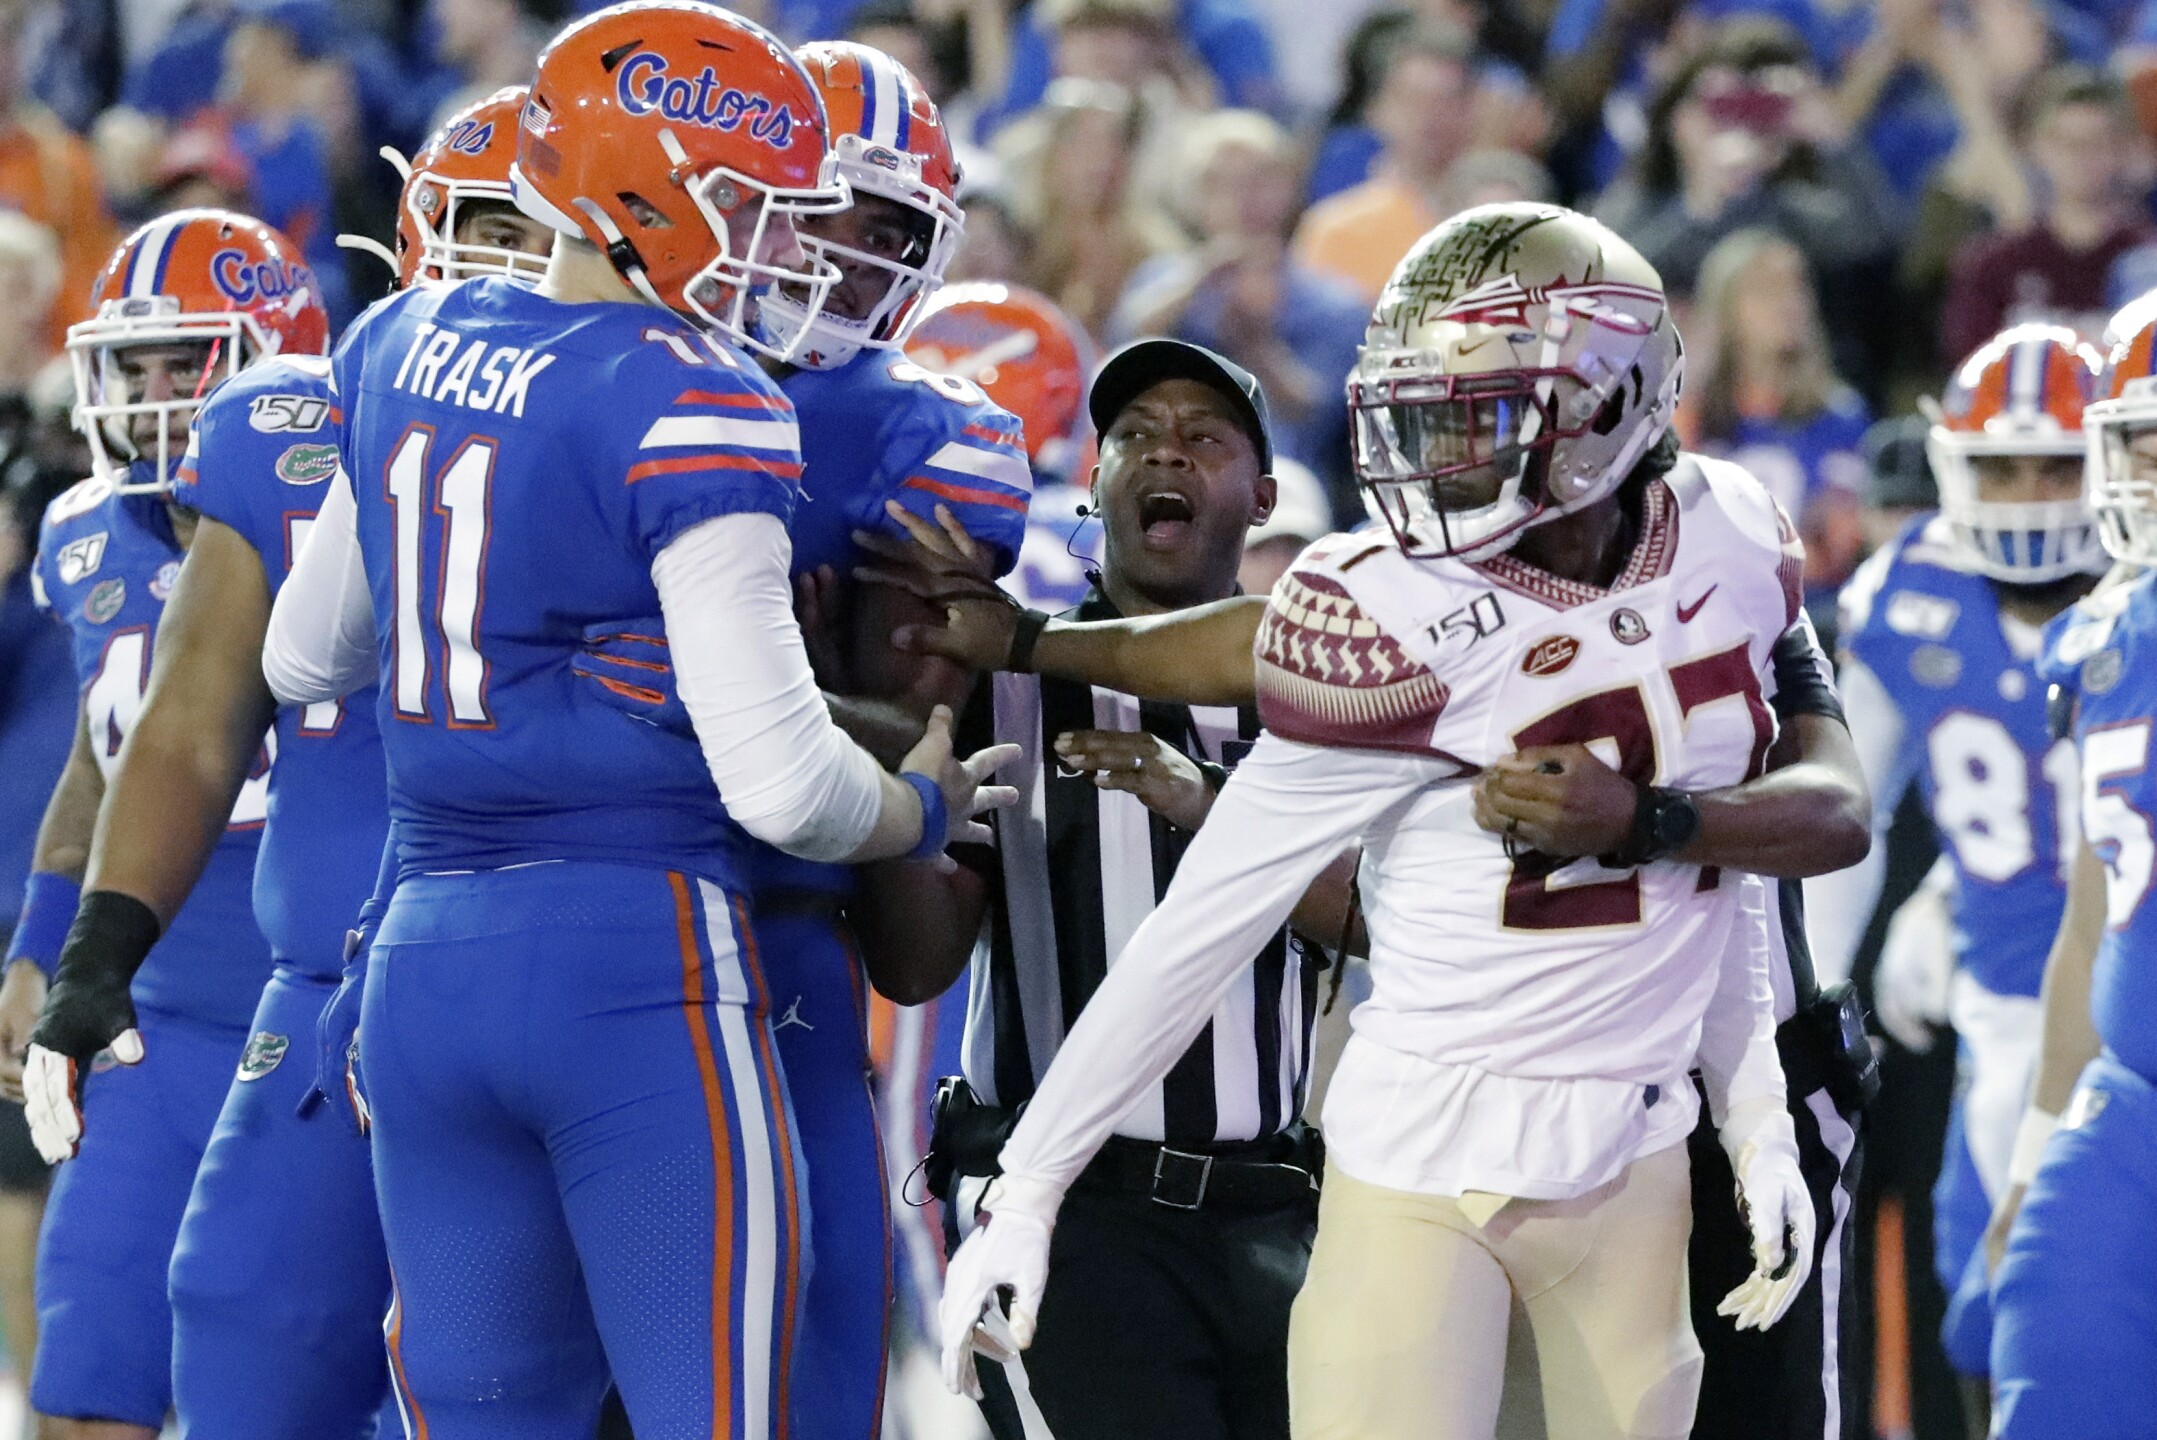 Argument between Florida Gators QB Kyle Trask and Florida State Seminoles defensive back Akeem Dent in 2019